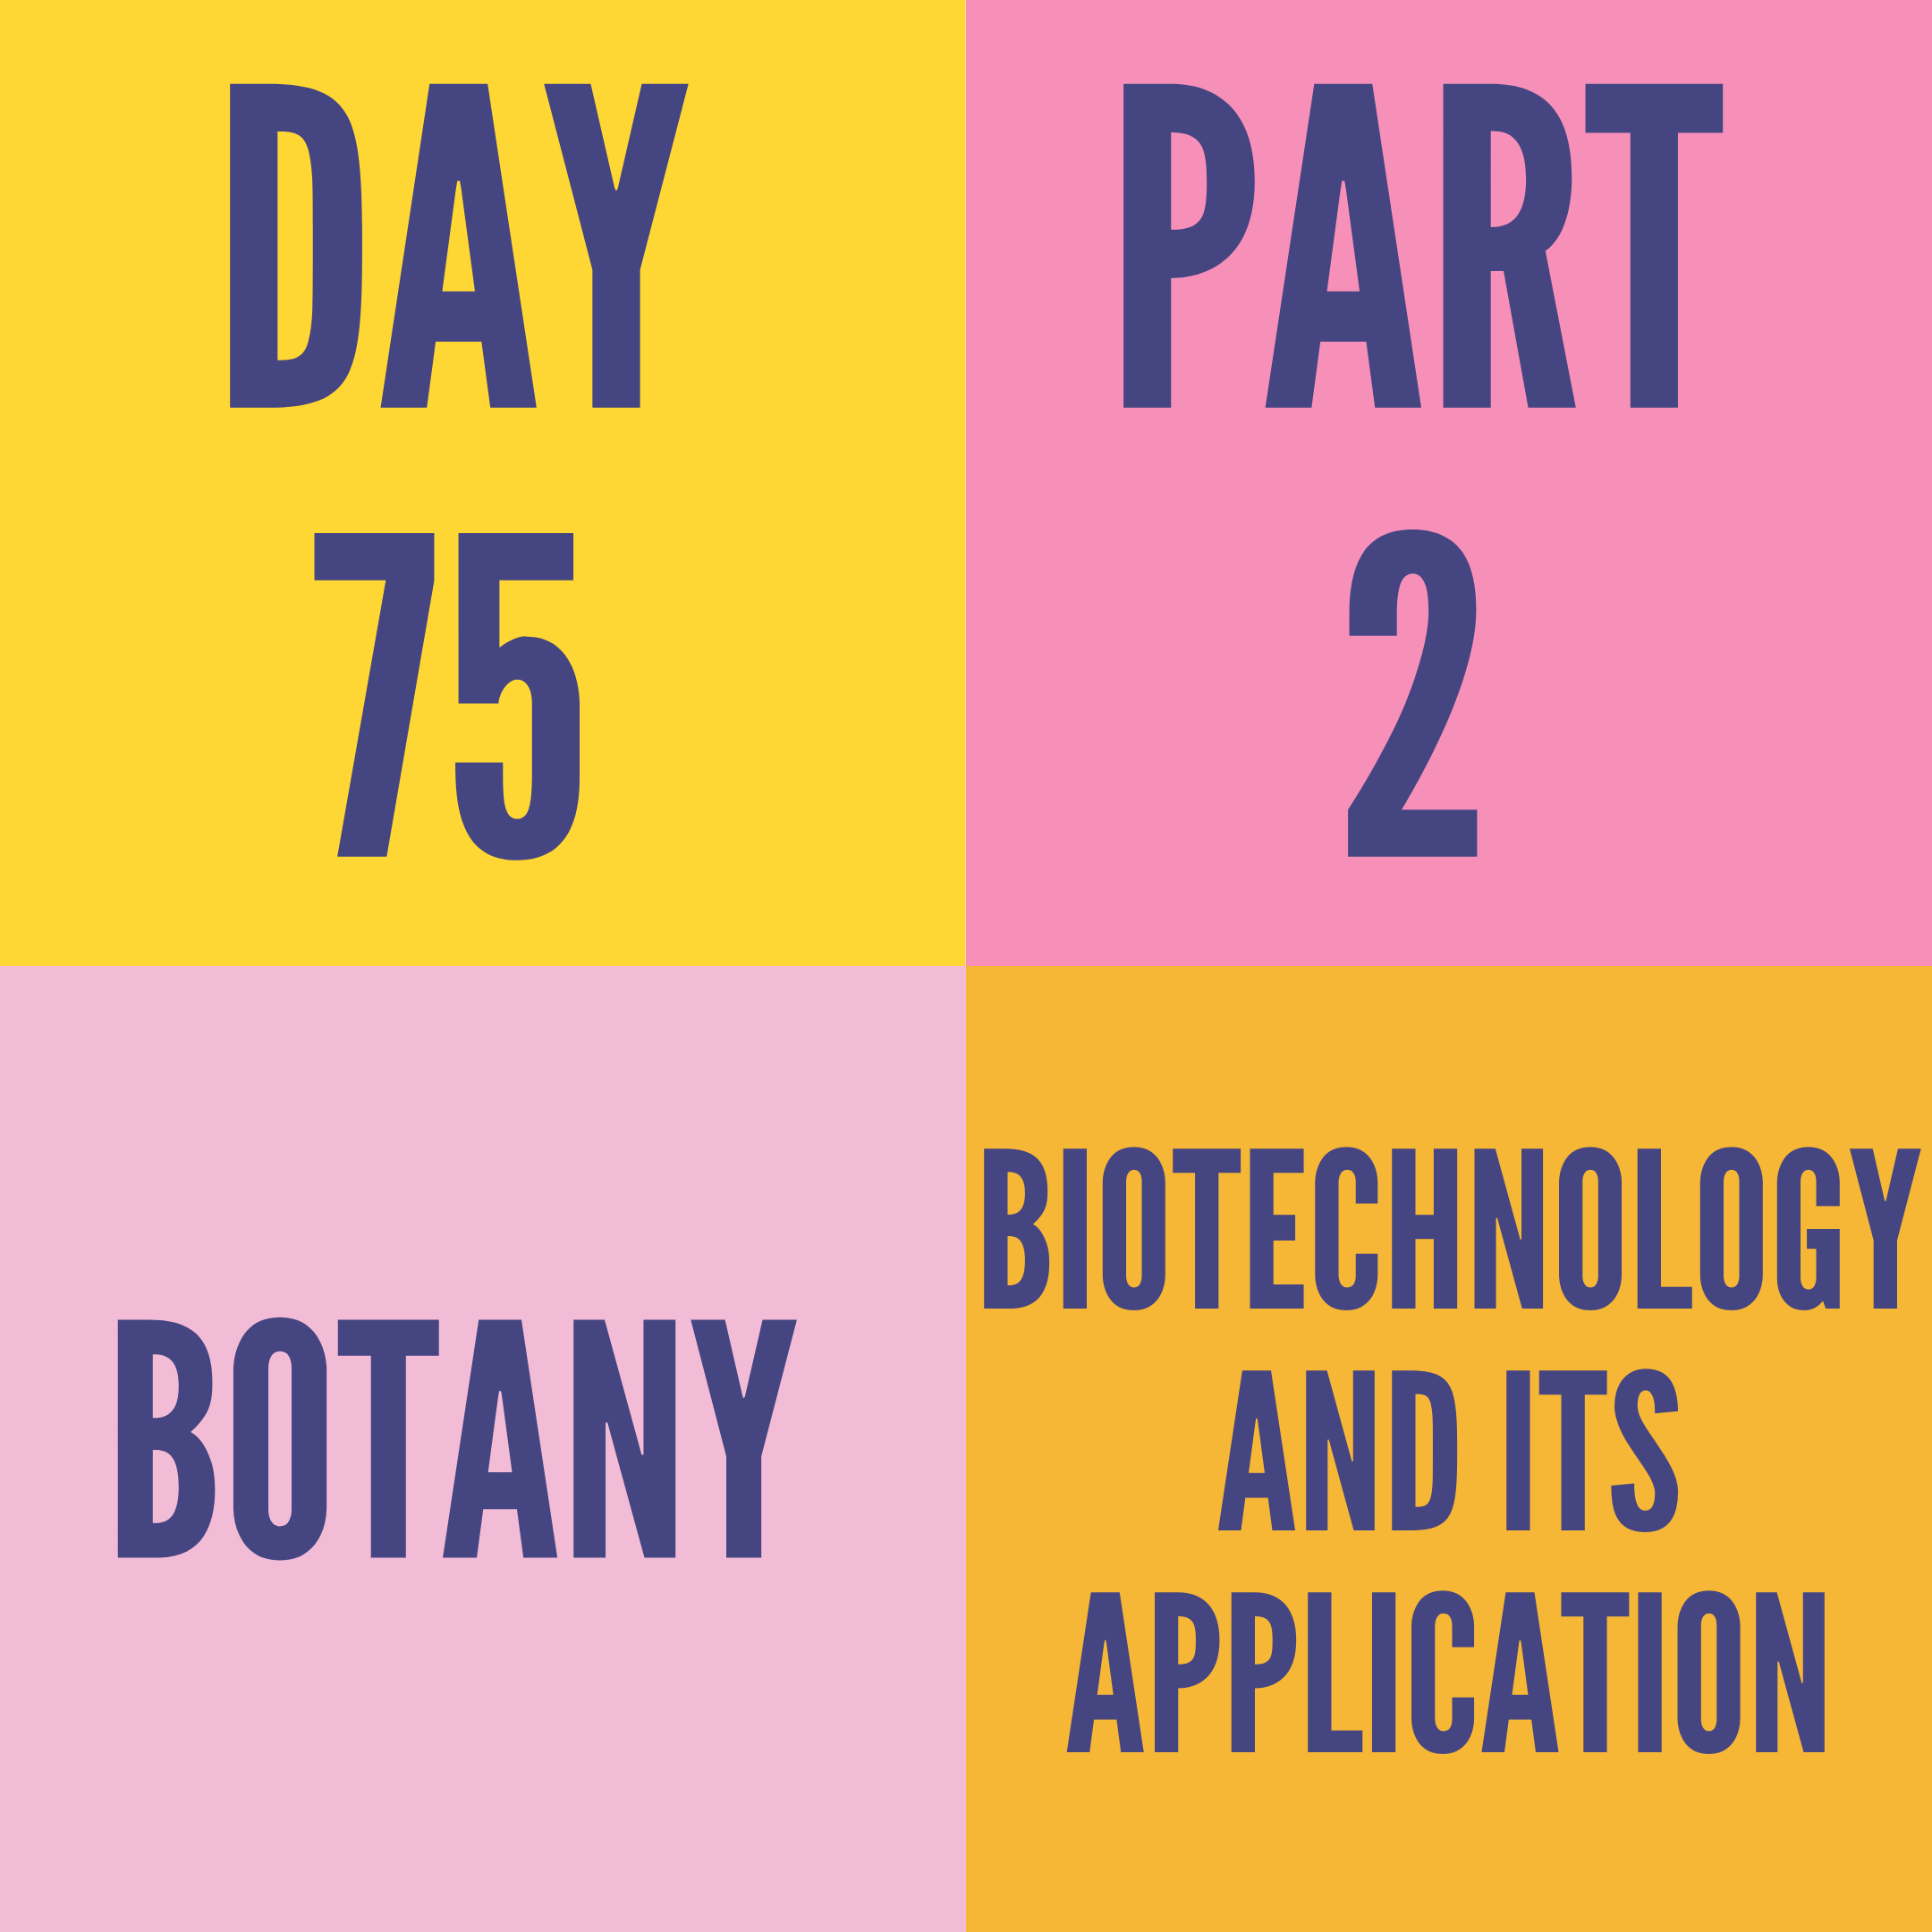 DAY-75 PART-2 BIOTECHNOLOGY AND ITS APPLICATION